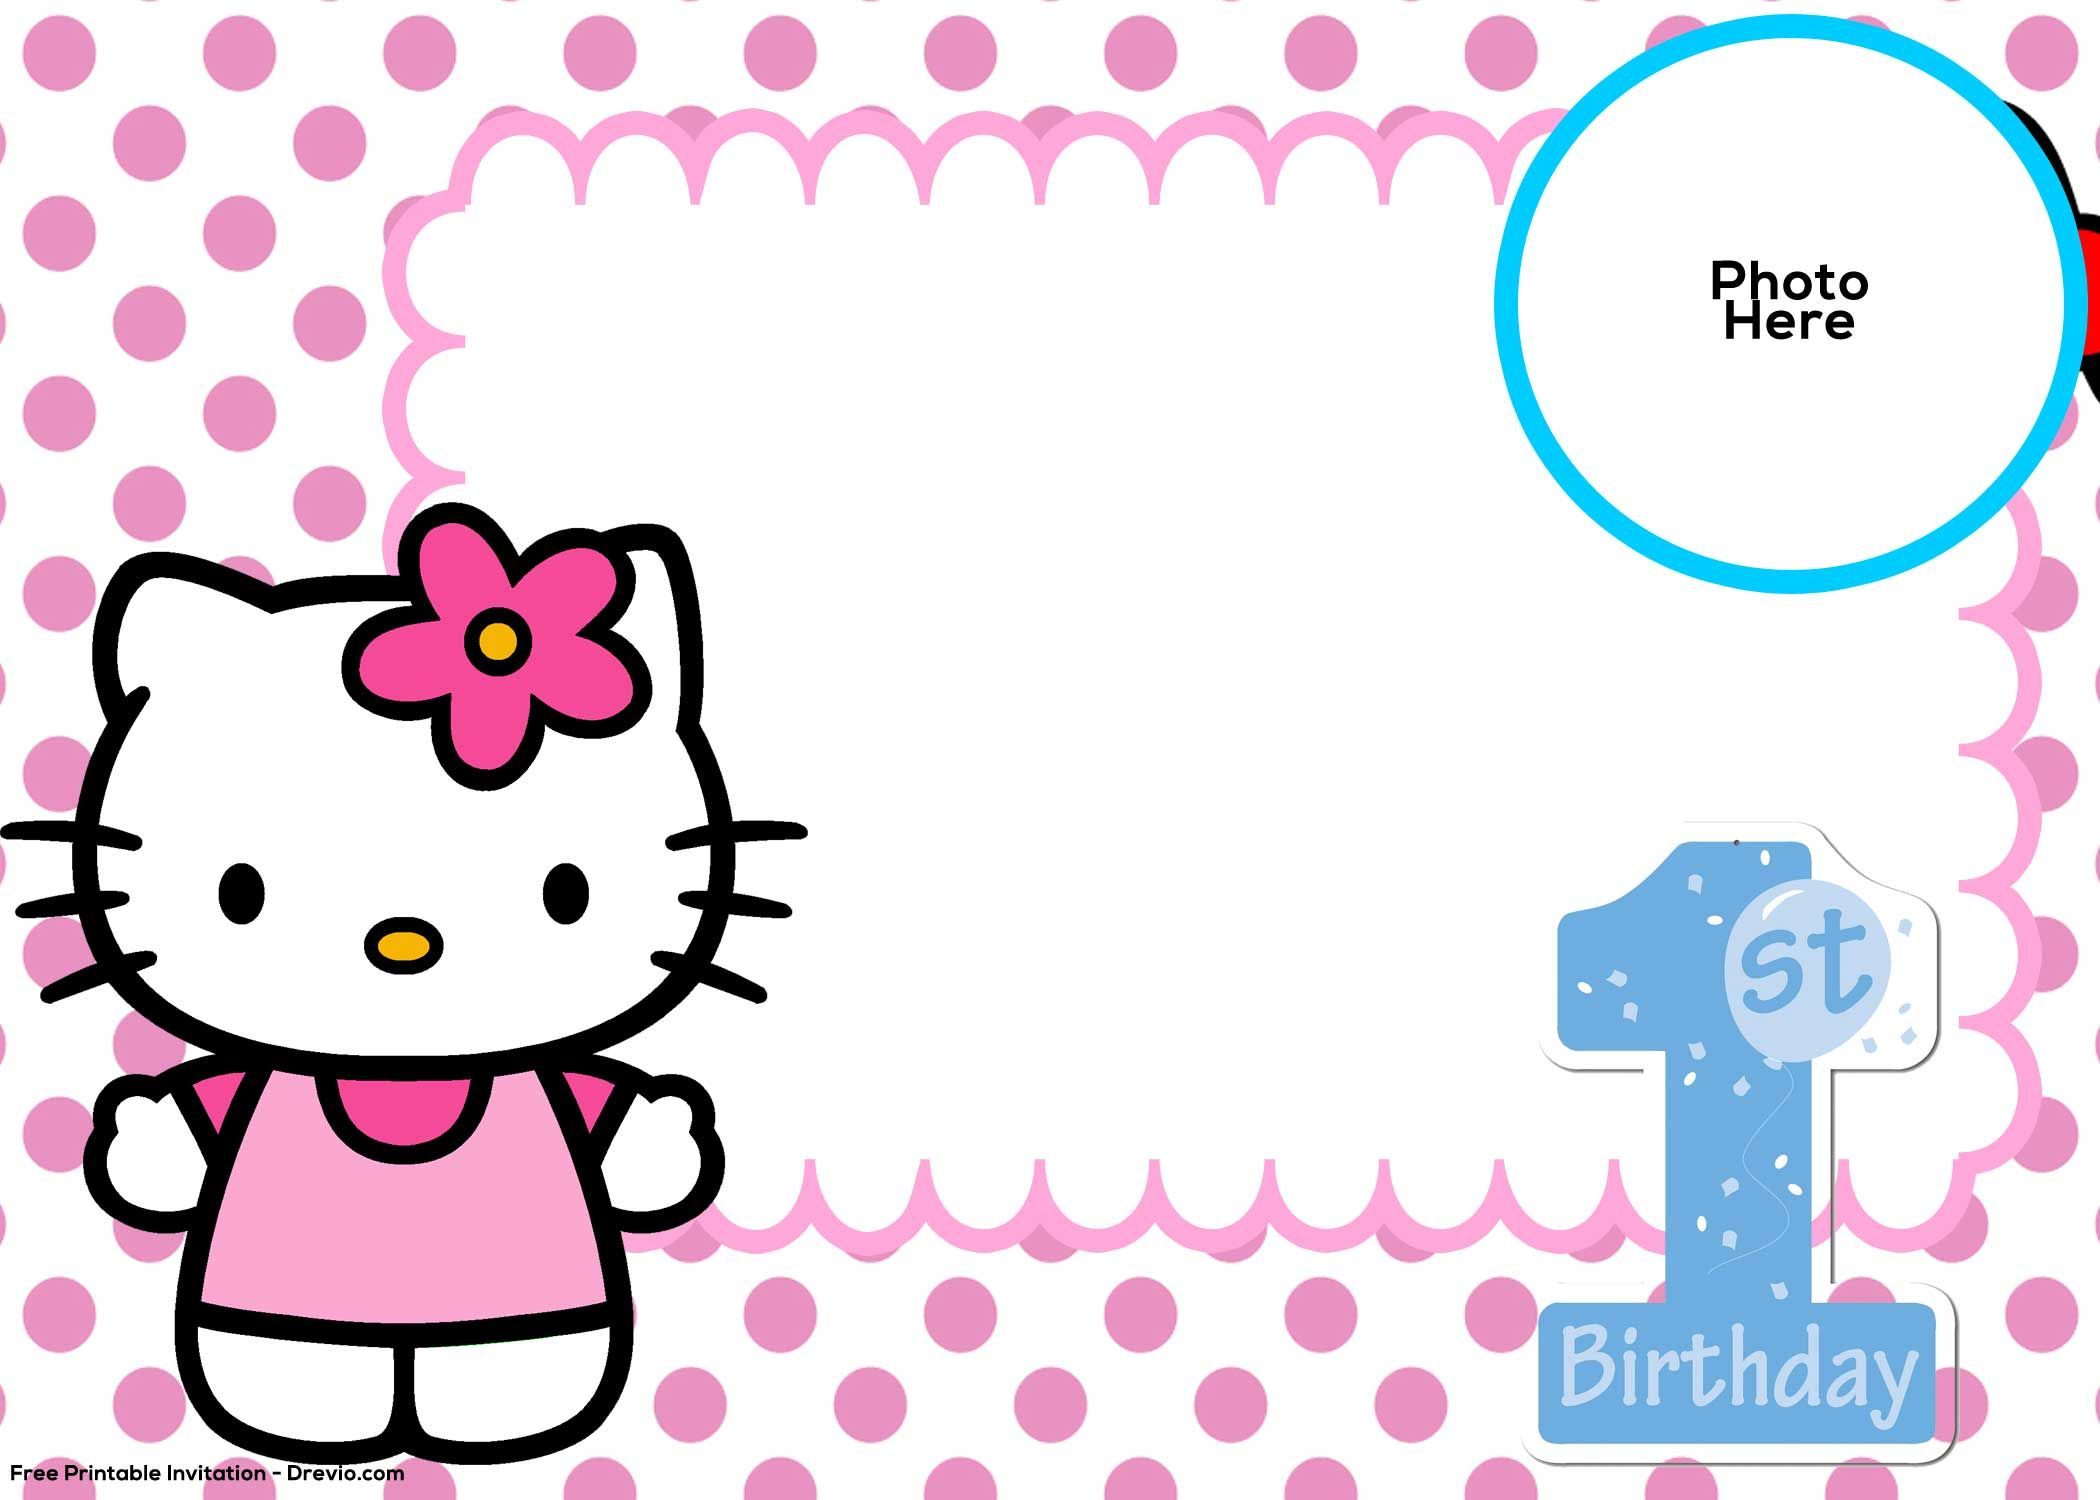 FREE Hello Kitty 5st Birthday Invitation Template  DREVIO  Hello